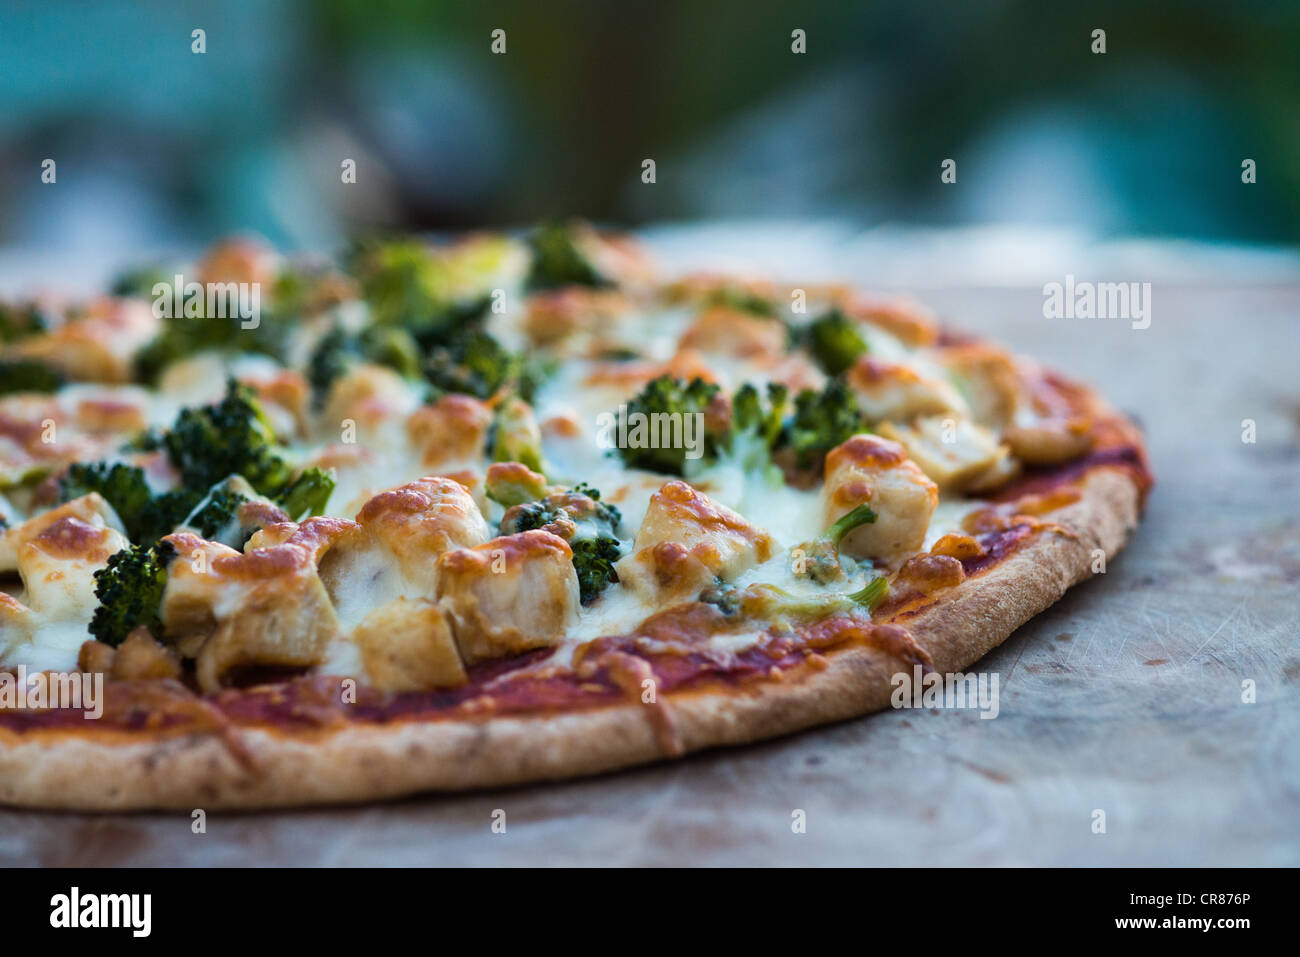 Pizza on a wooden board - Stock Image